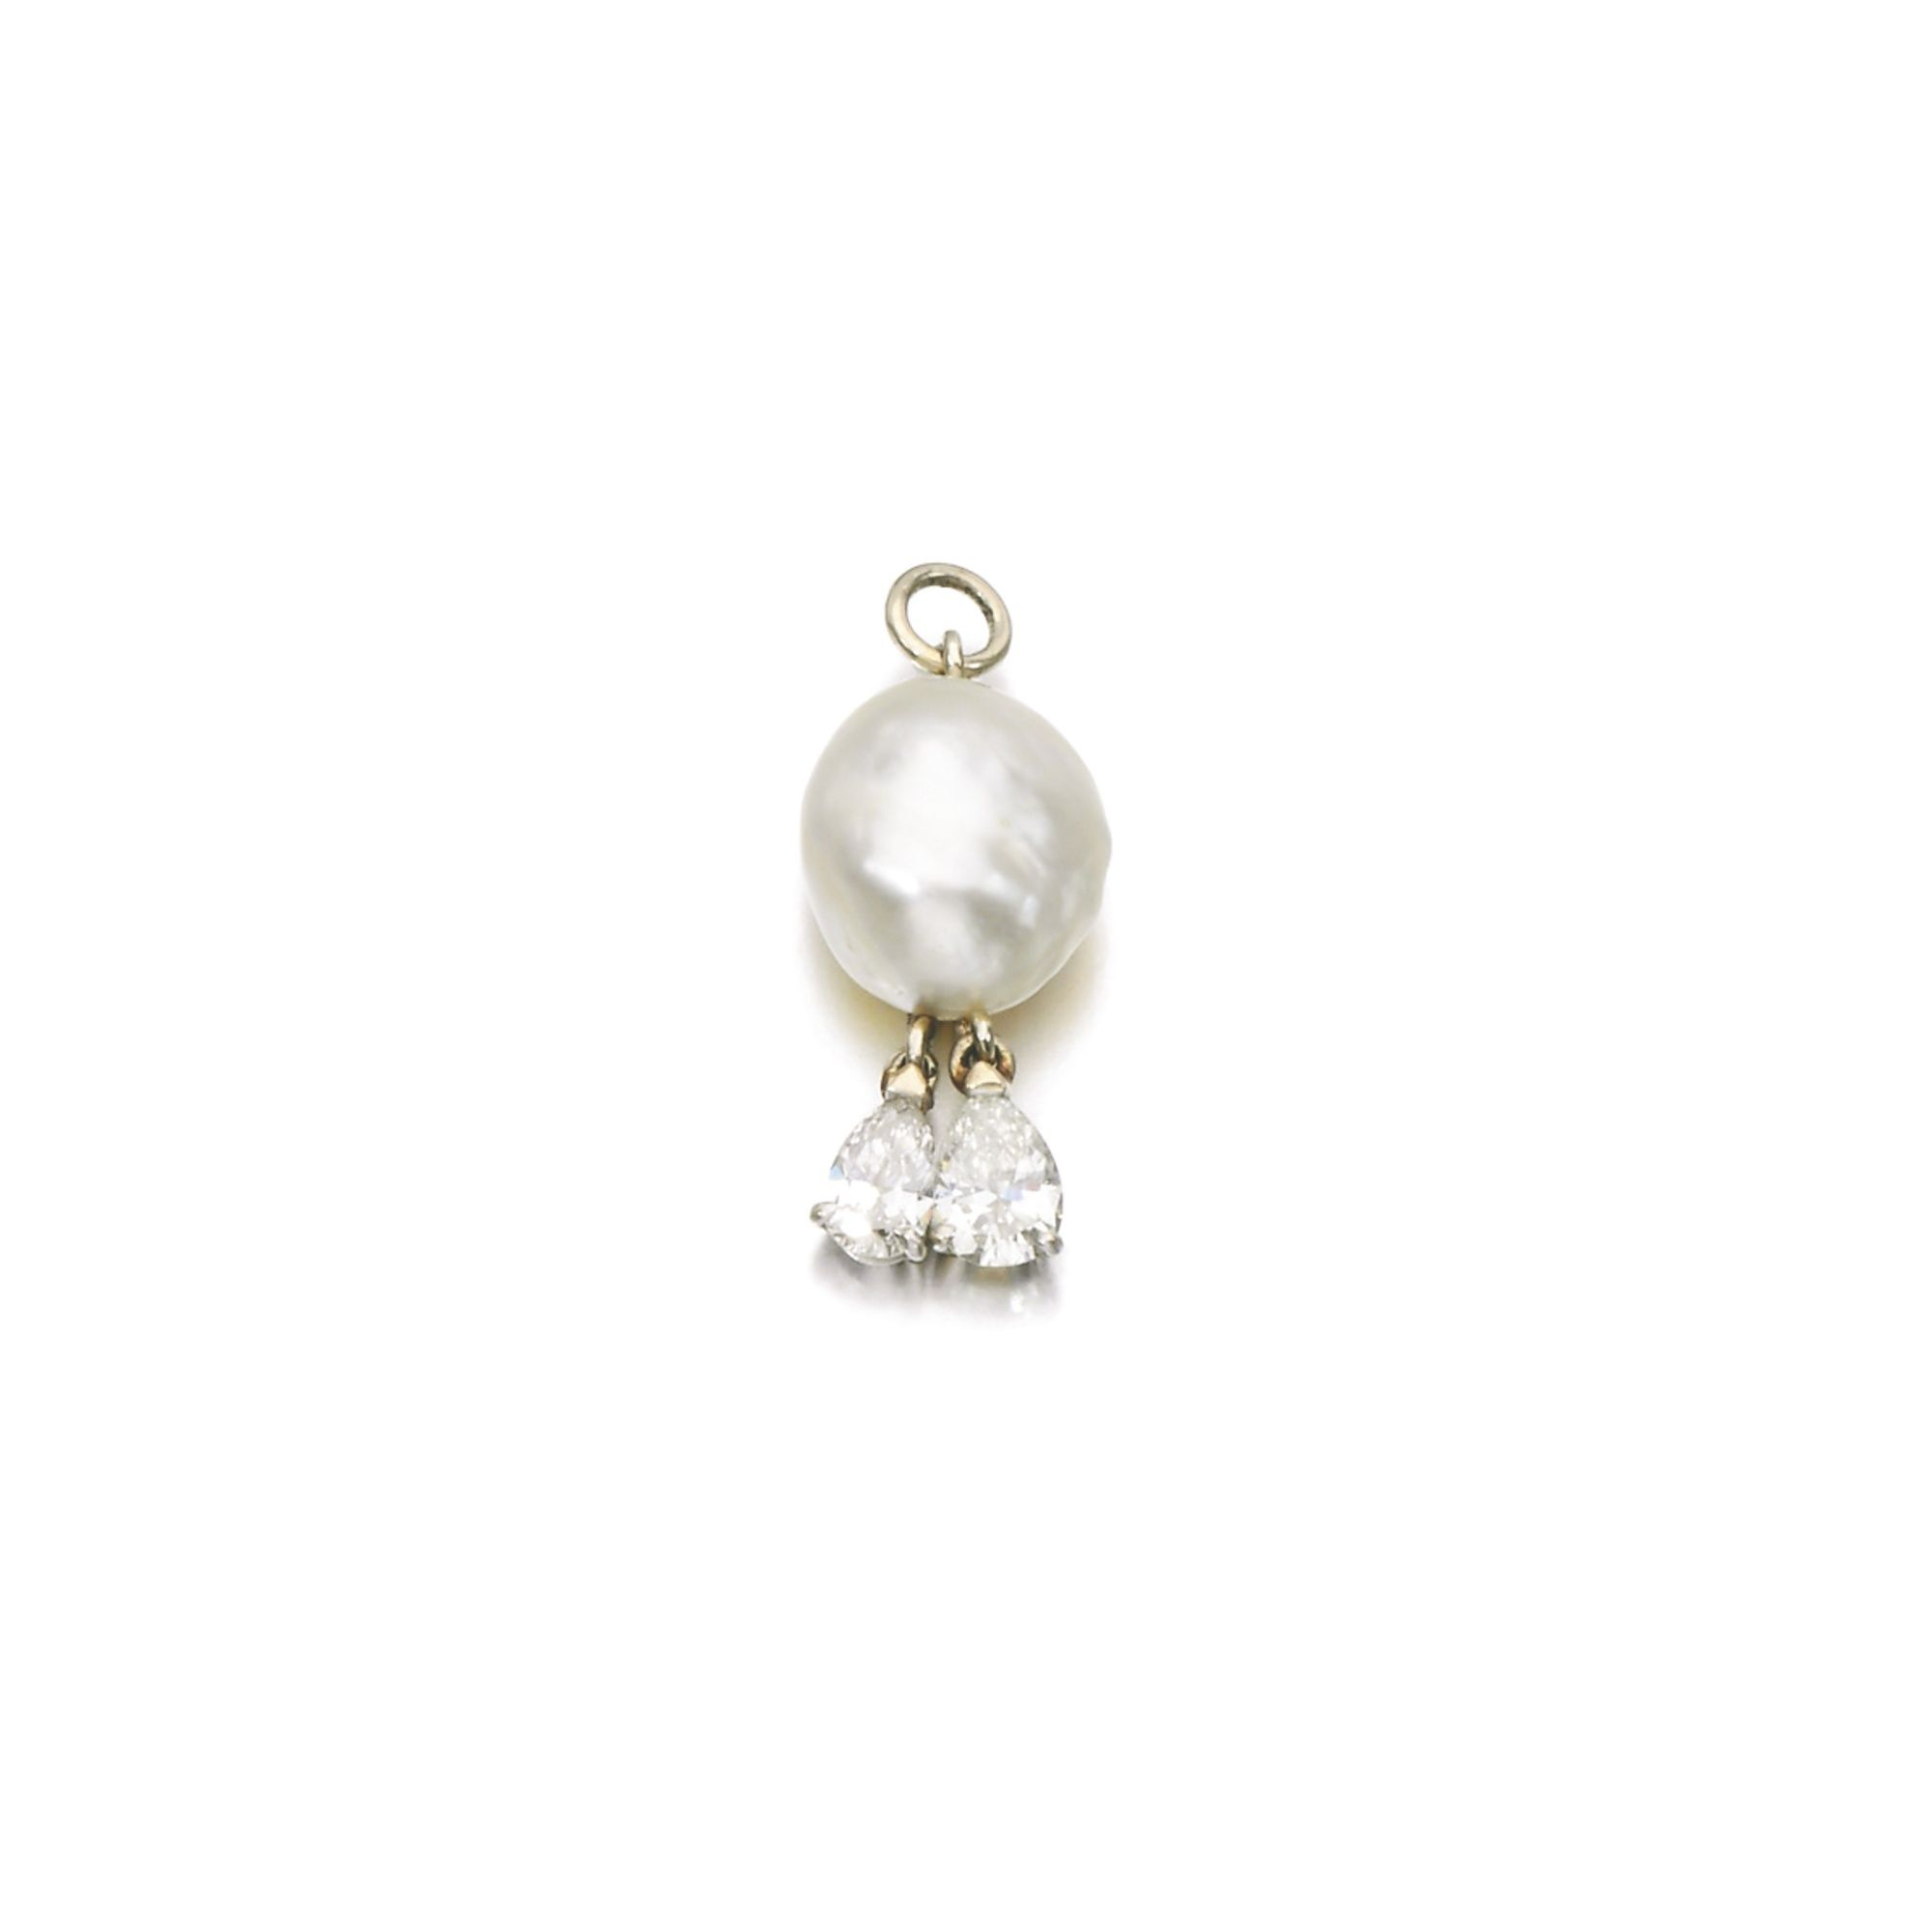 Property from a noble family natural pearl and diamond pendant set